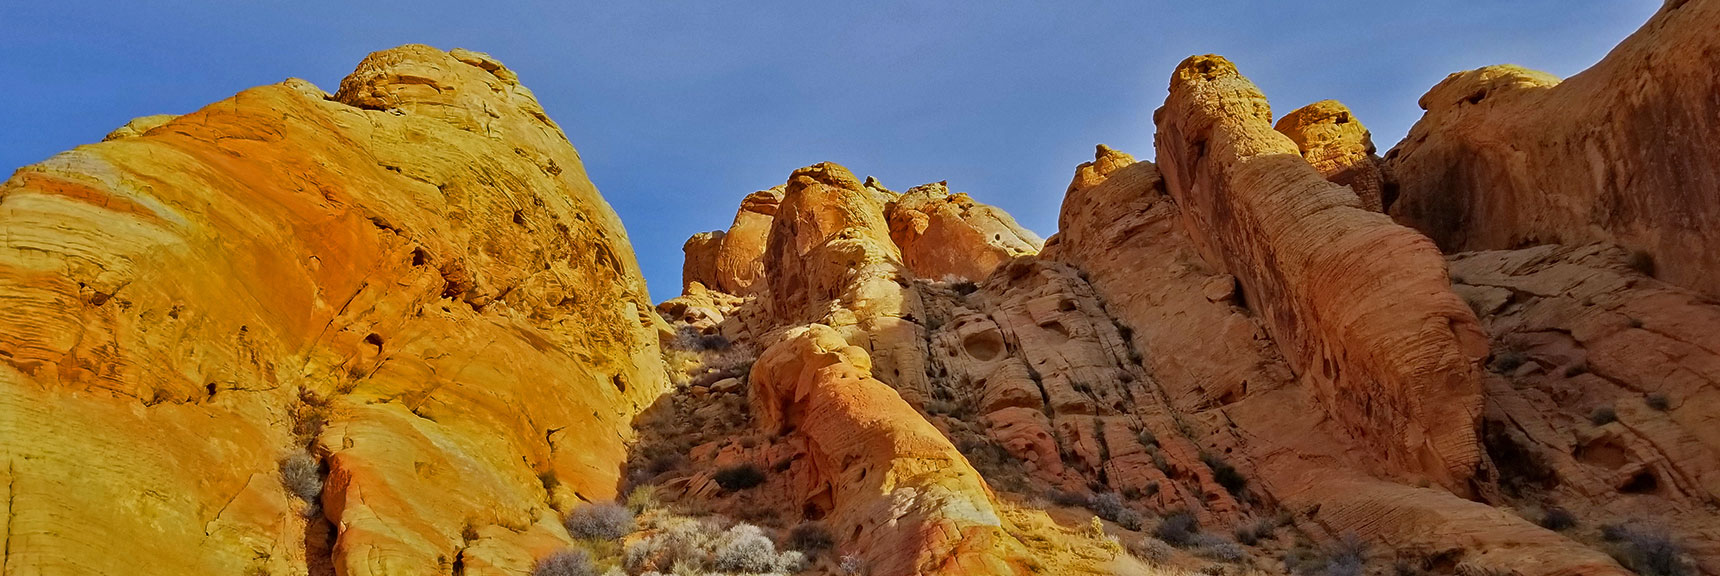 Rock Formations Along Rainbow Vista Trail in Valley of Fire State Park, Nevada